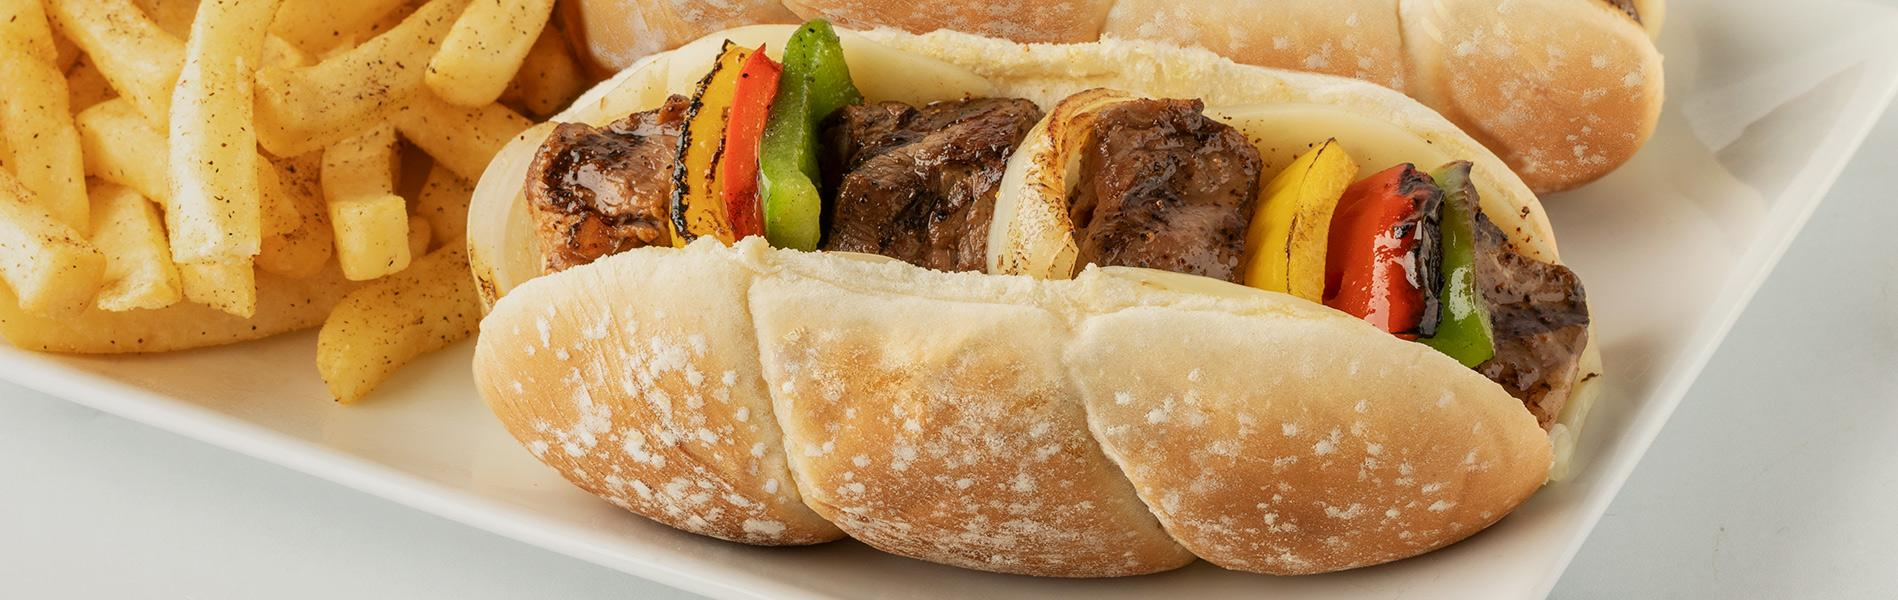 grilled steak, peppers and onions into grilled, Provolone-lined Sara Lee Artesano Sausage Rolls